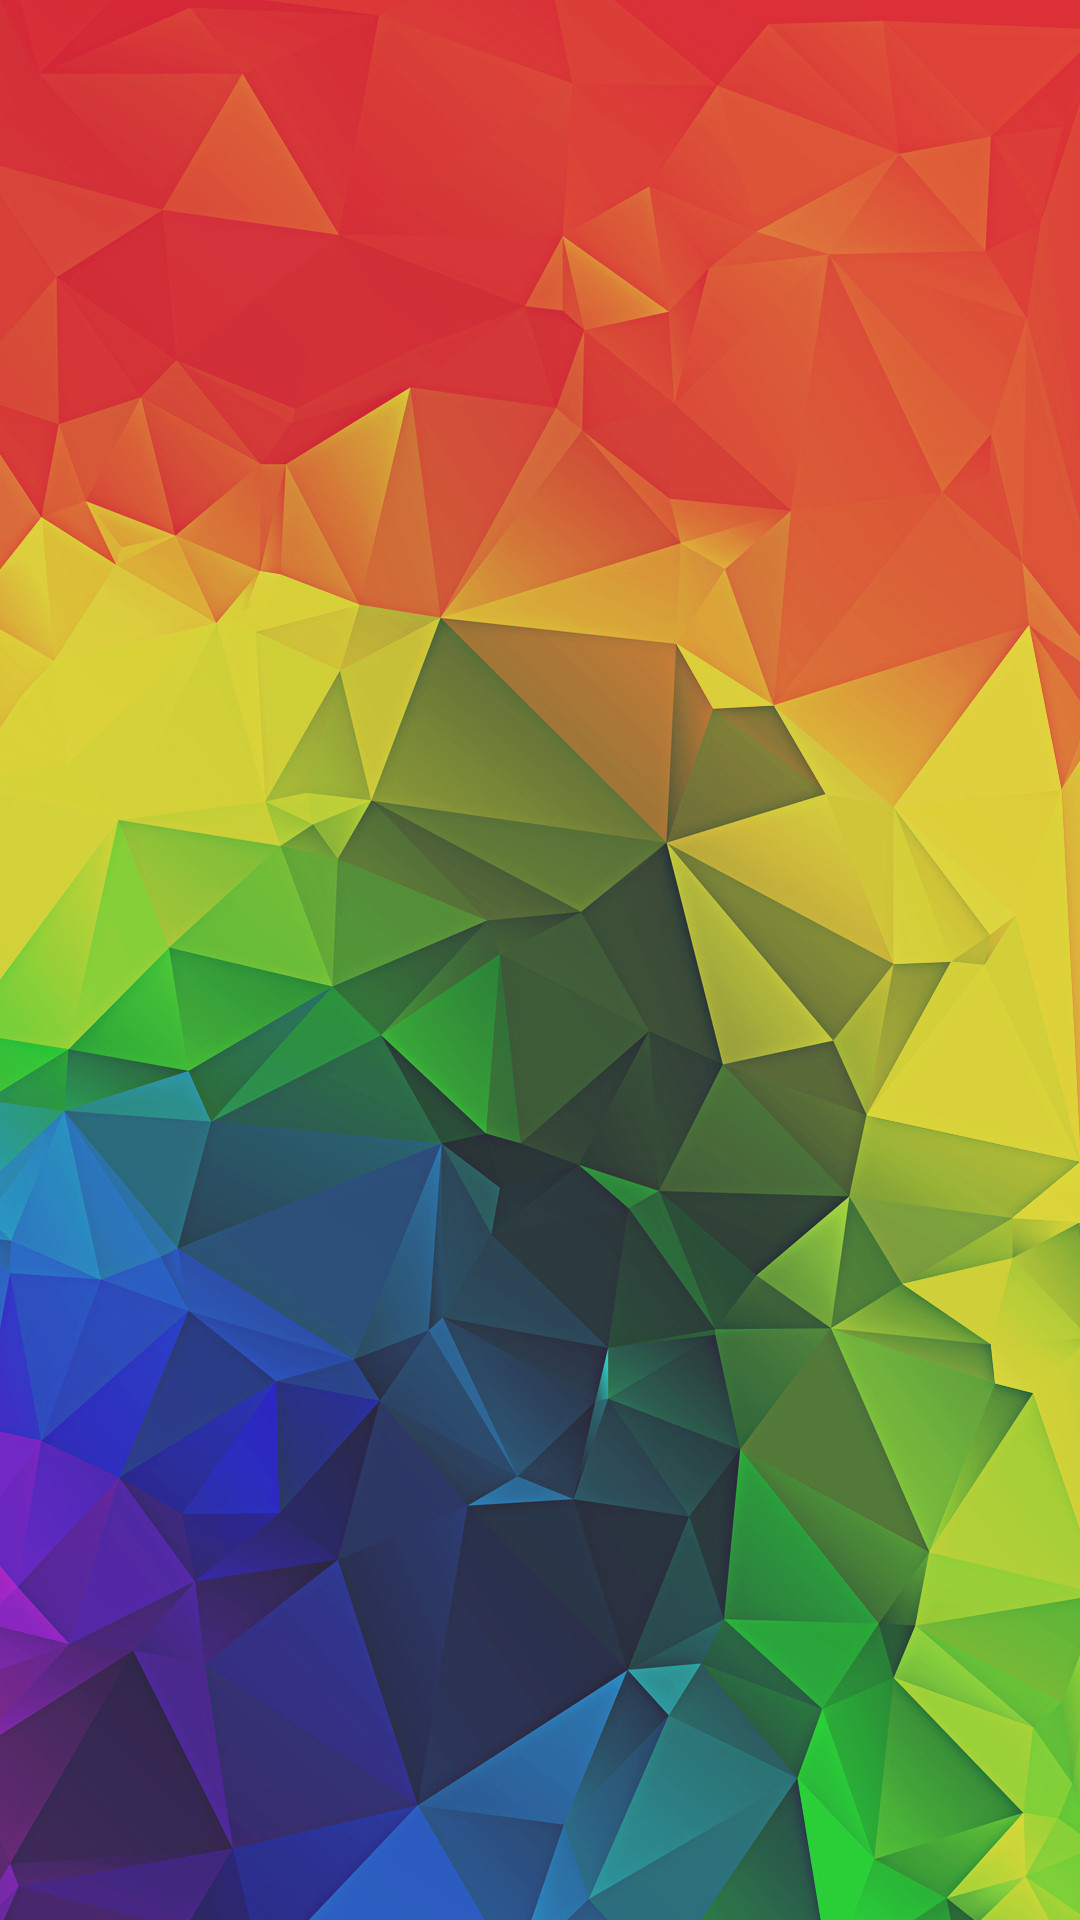 Rainbow Triangles Abstract iPhone 6+ HD Wallpaper